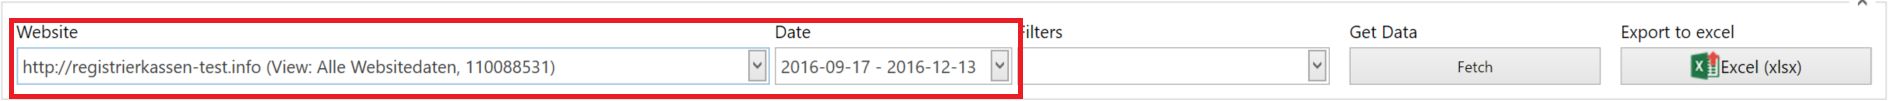 Google Analytics: Select Property and Date